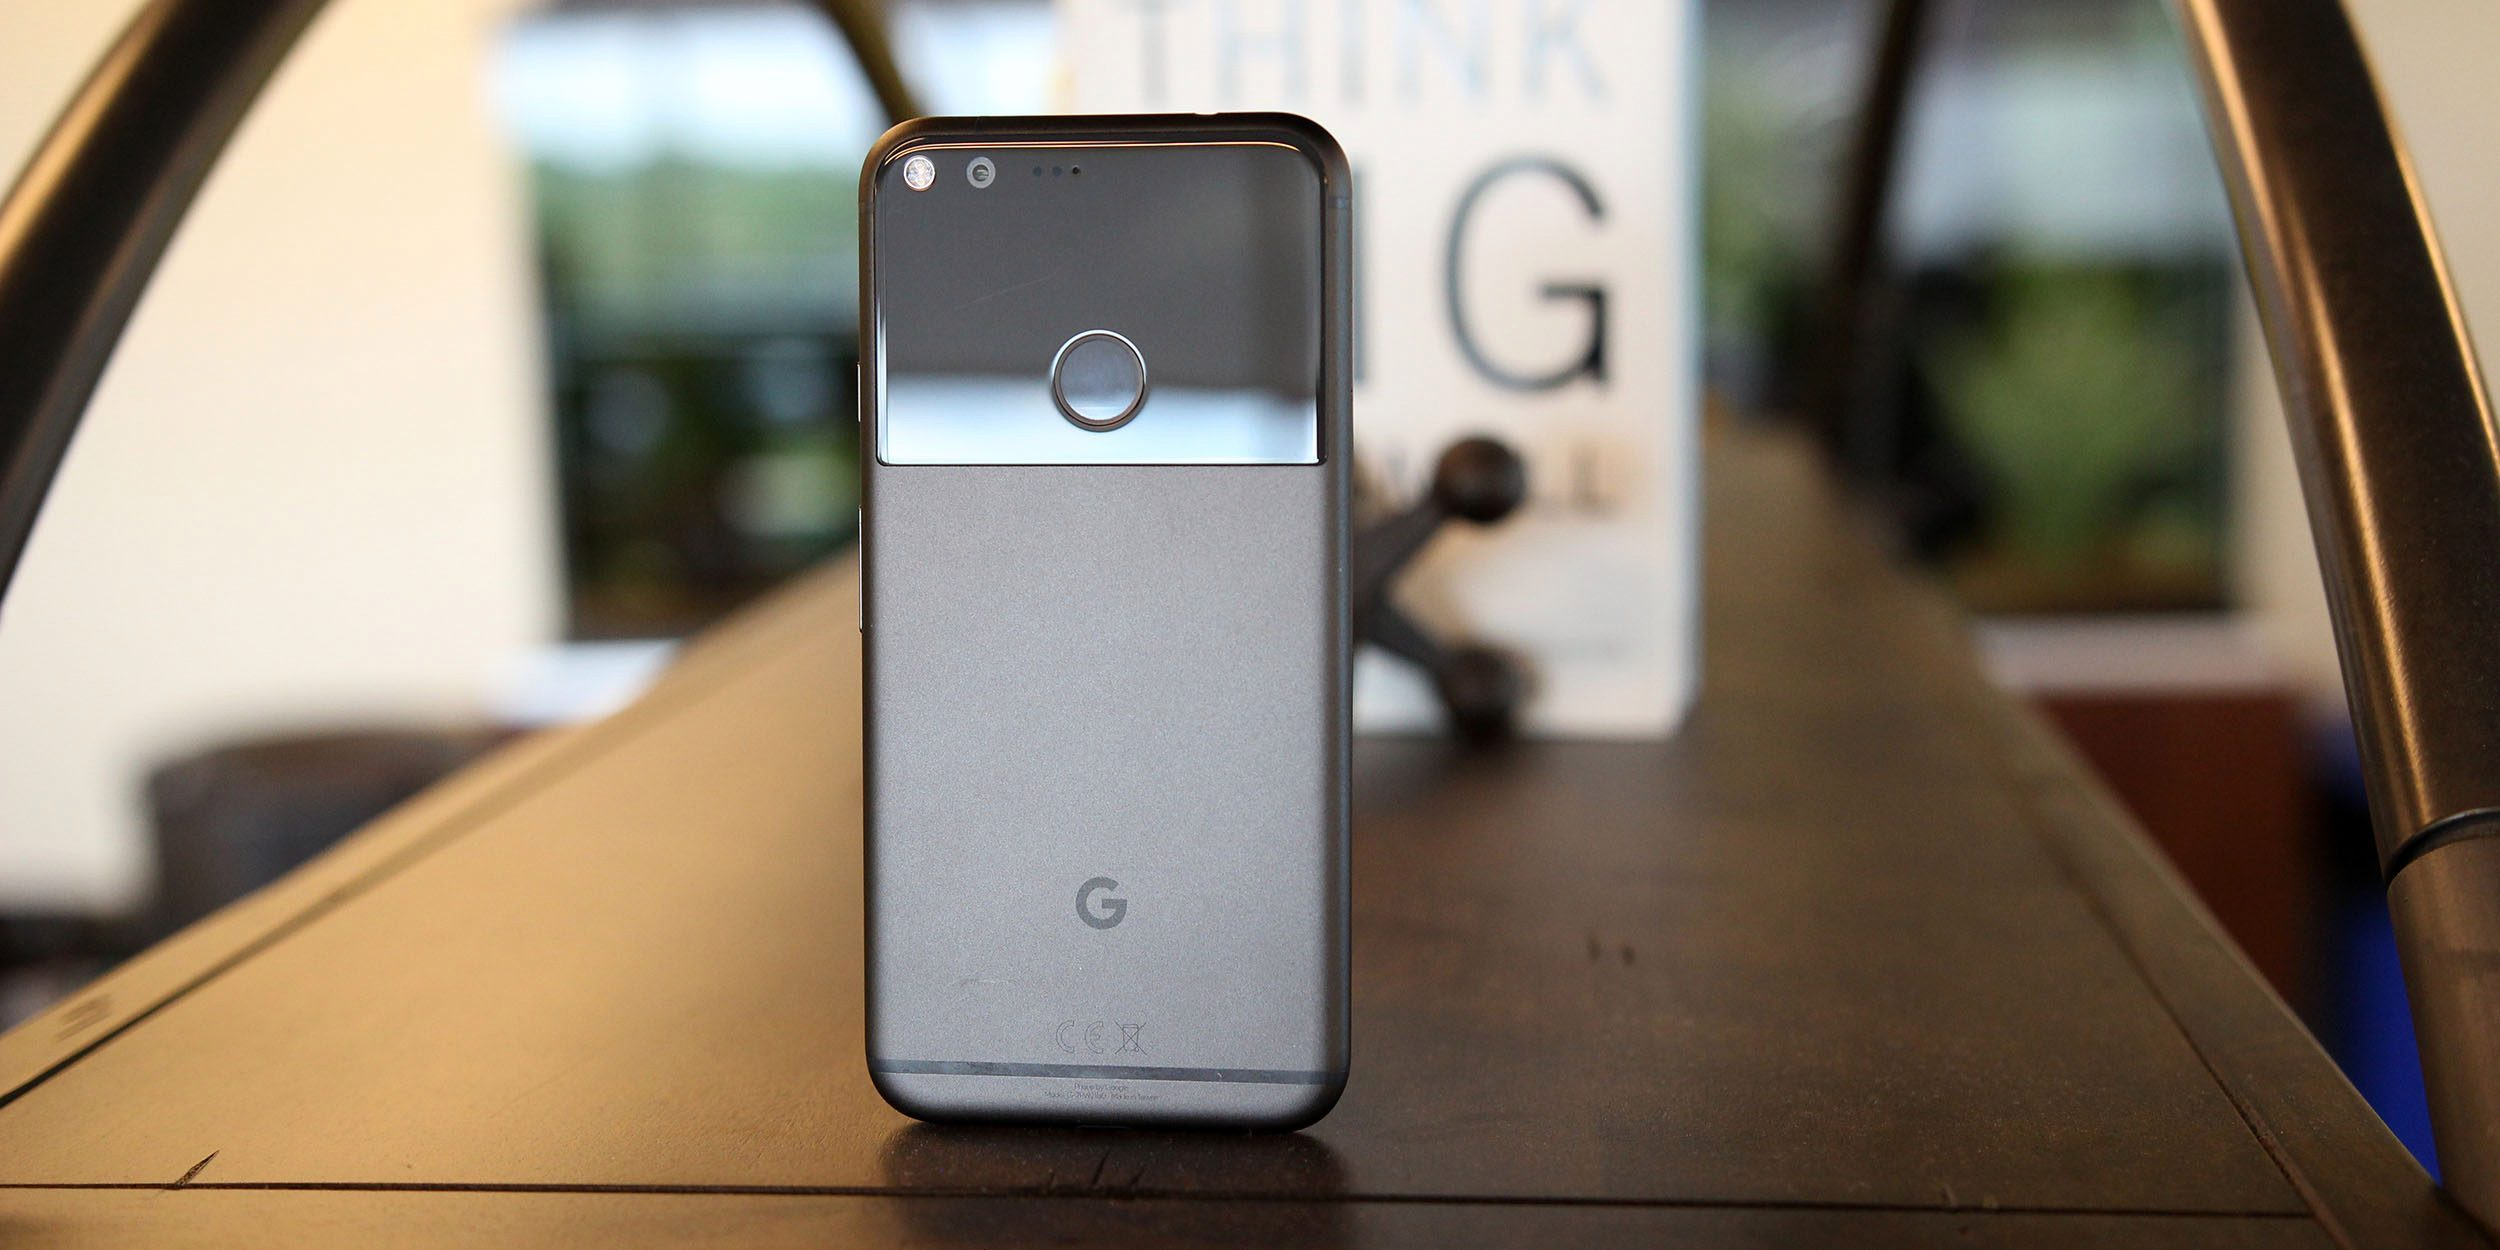 Google extends support for original Pixel and Pixel XL to Android Q 'by popular demand'